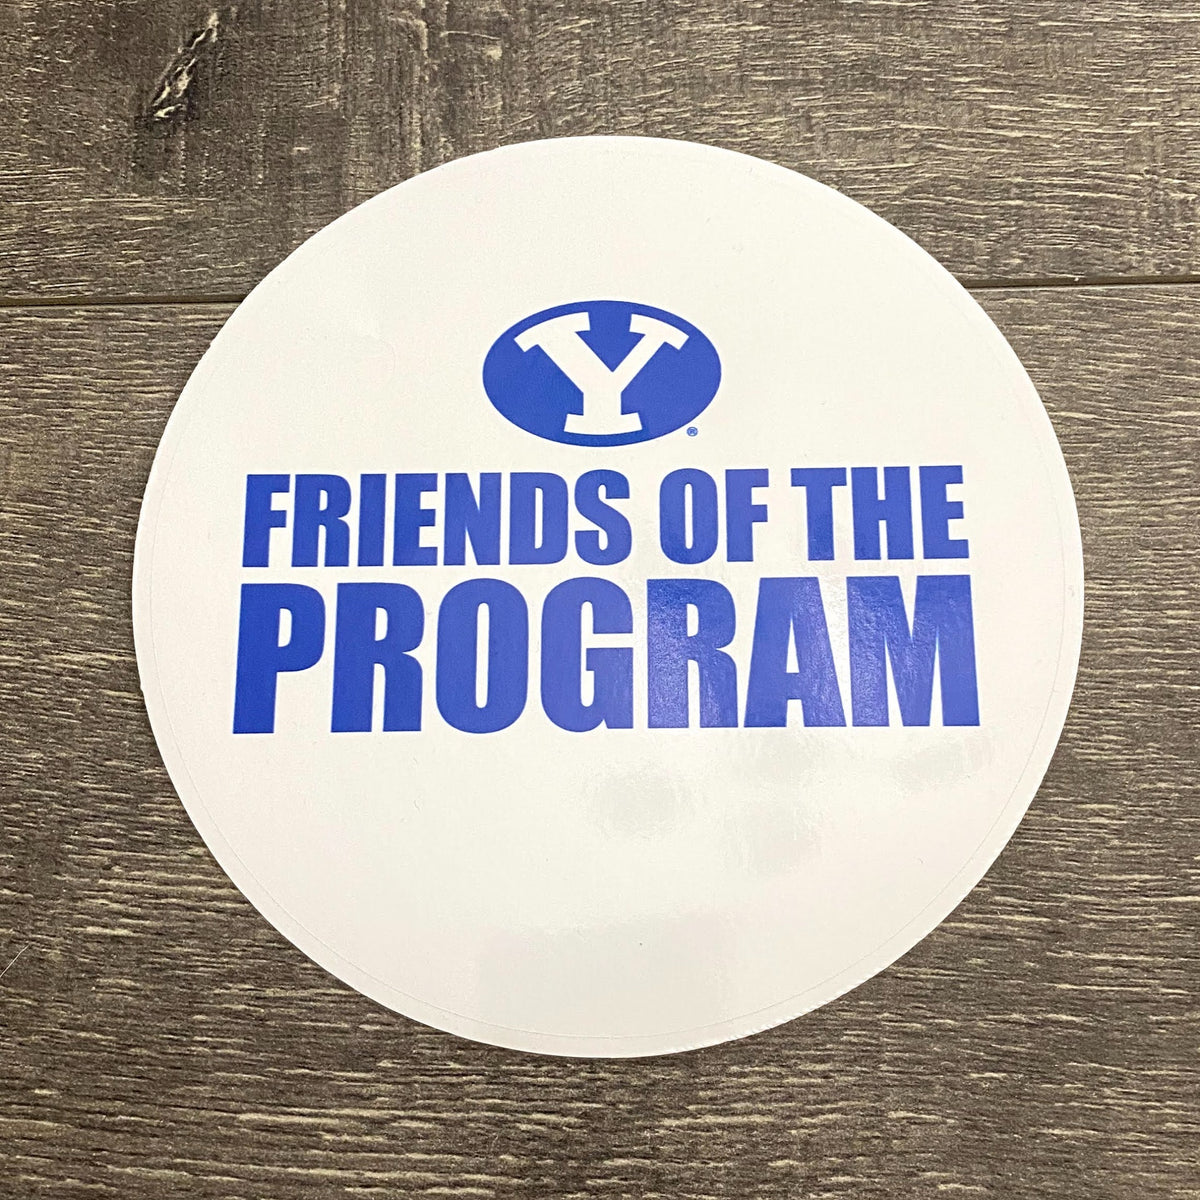 Friends of the Program 5-inch White and Royal Vinyl Sticker